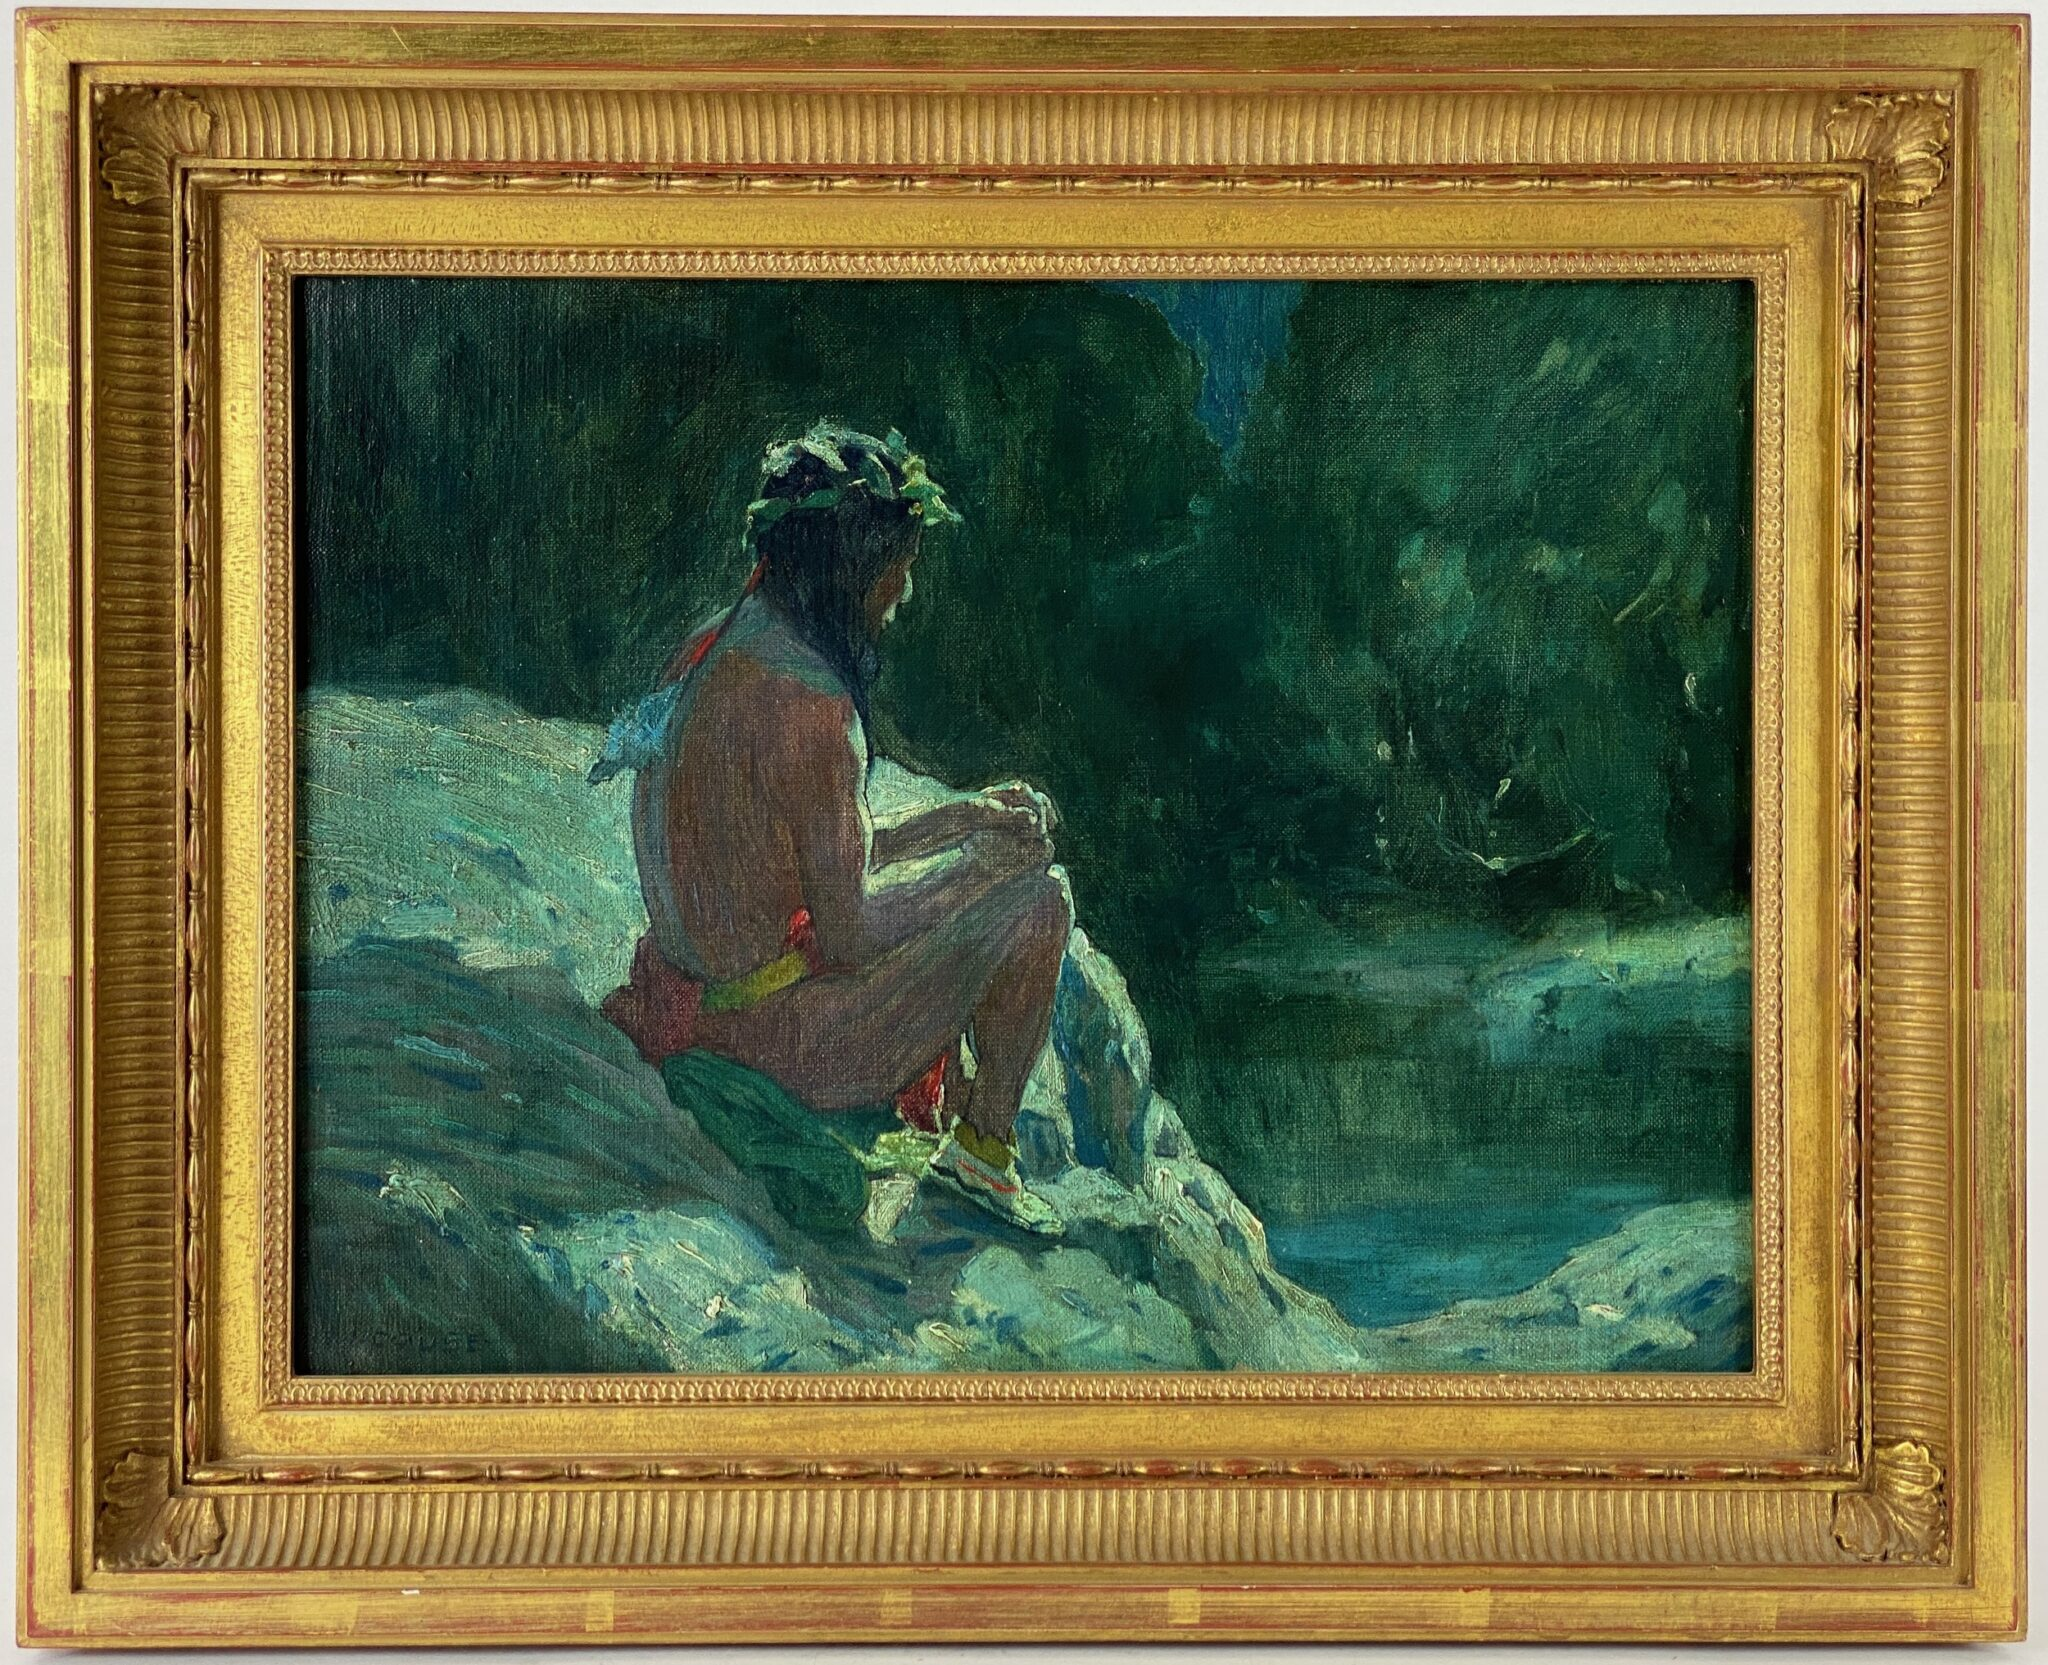 """INDIAN IN MOONLIGHT"" NOCTURNE BY E.I. COUSE 